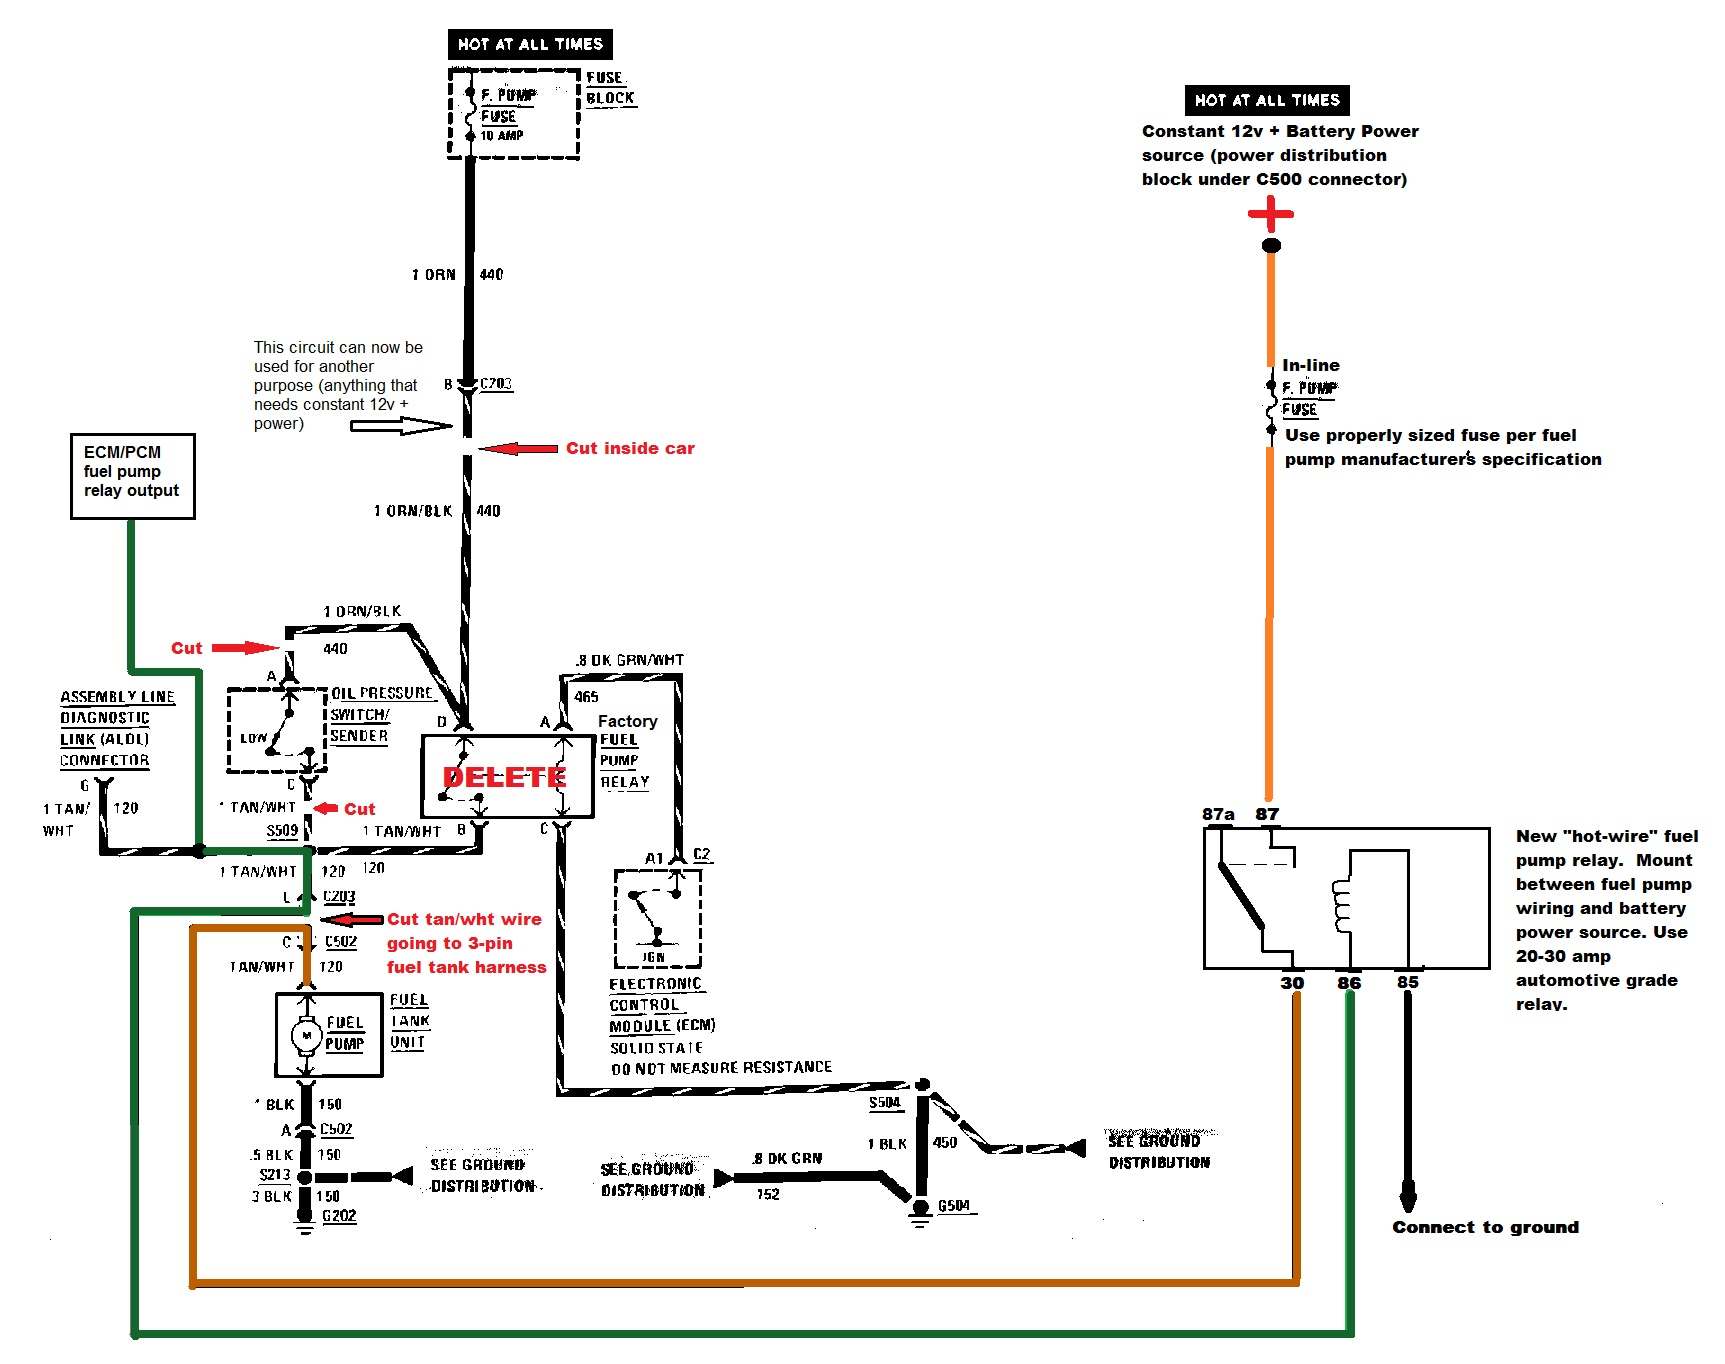 Fiero Fuel Pump Hot Wire Instructions Diagram